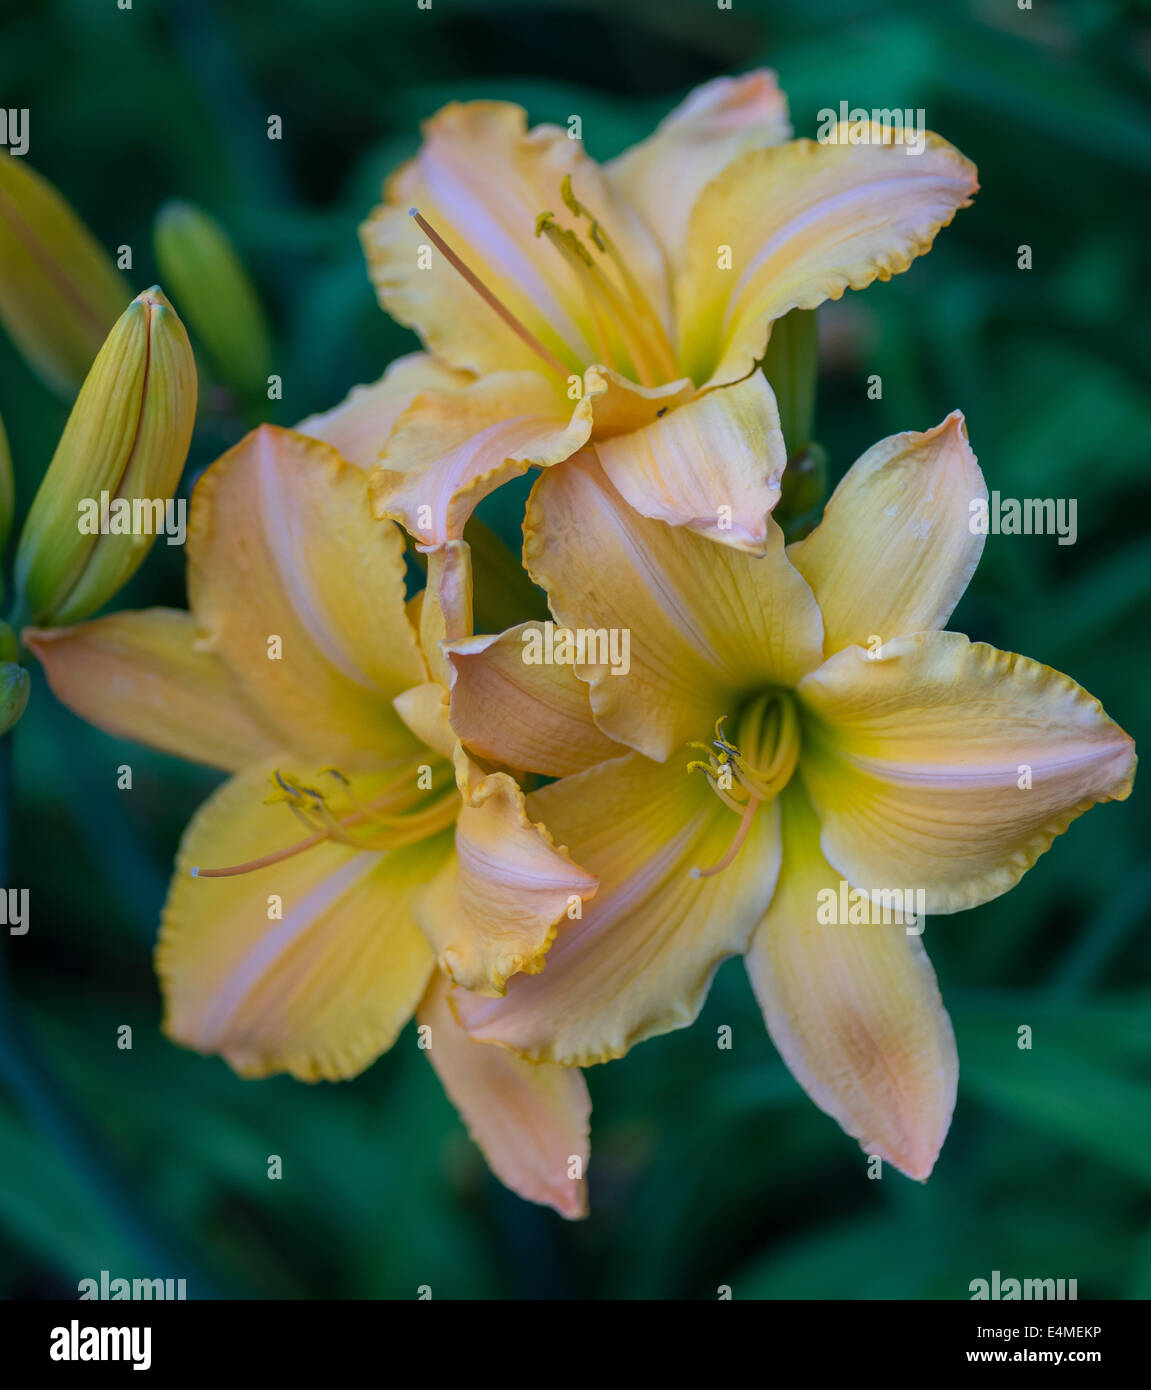 Pale pink and yellow lily flowers close up hemerocallis stock photo pale pink and yellow lily flowers close up hemerocallis izmirmasajfo